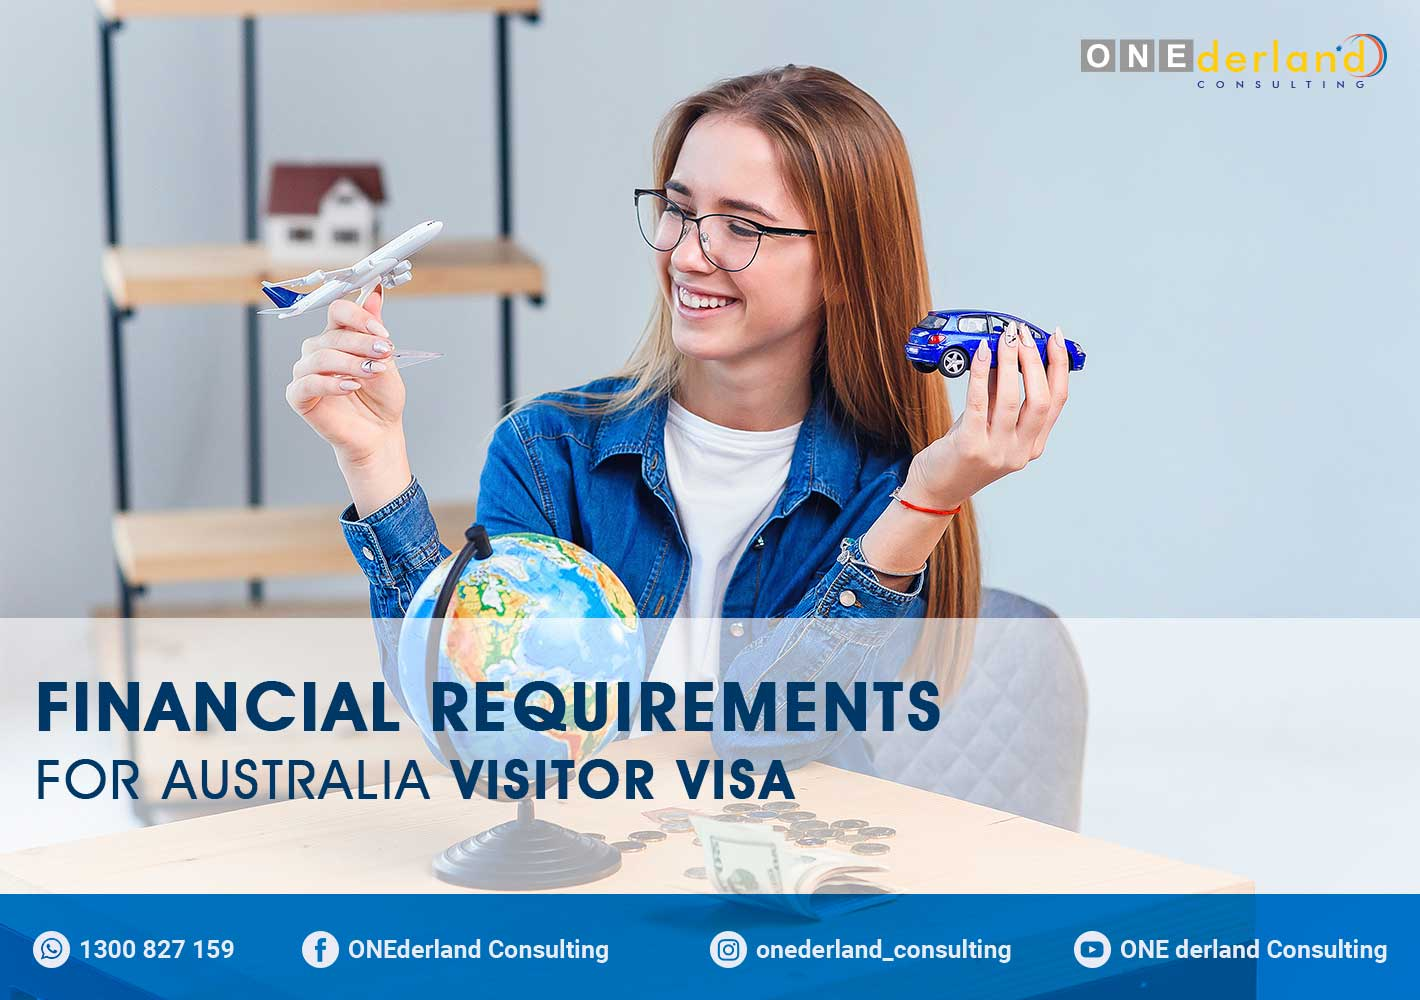 What is the Financial Requirements for Visitor Visa Australia?